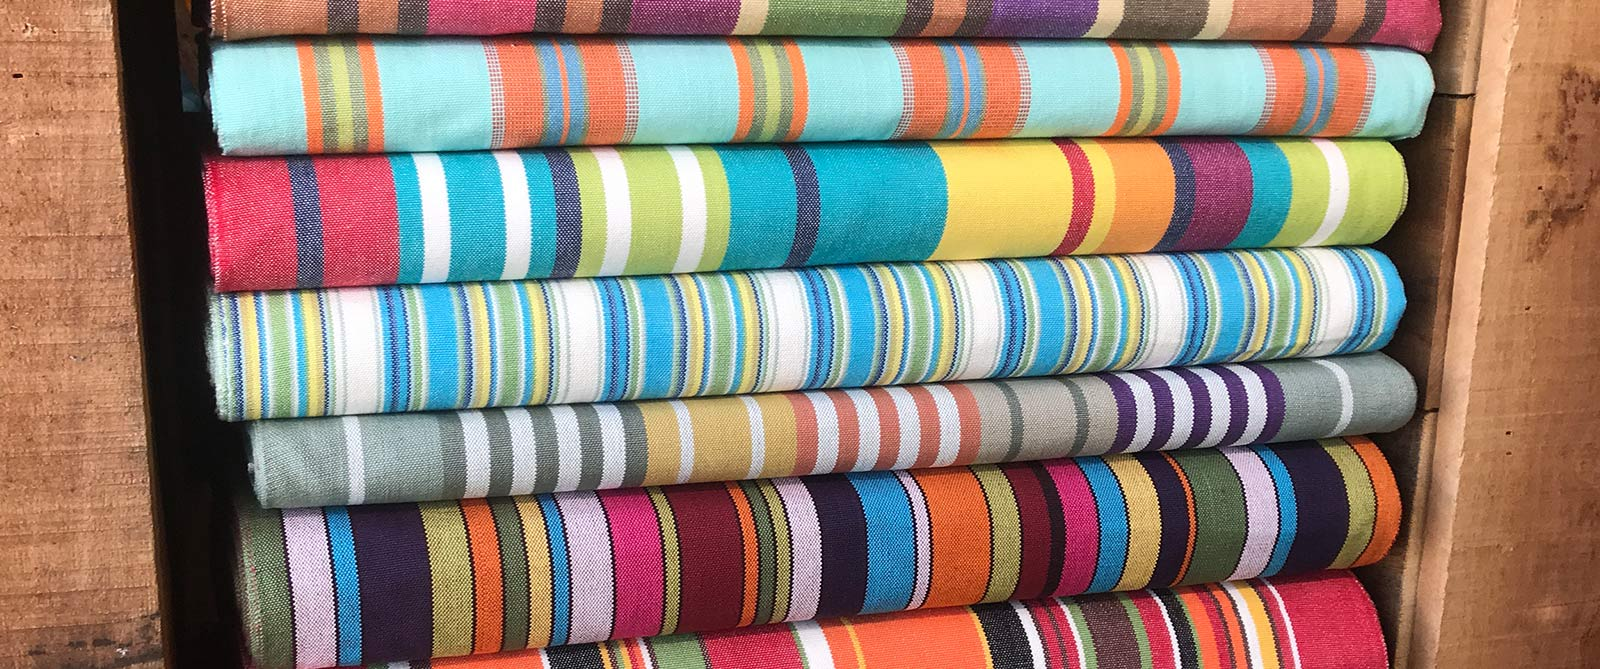 Deckchair Canvas | Deckchair Fabrics | Striped Deck Chair Fabrics